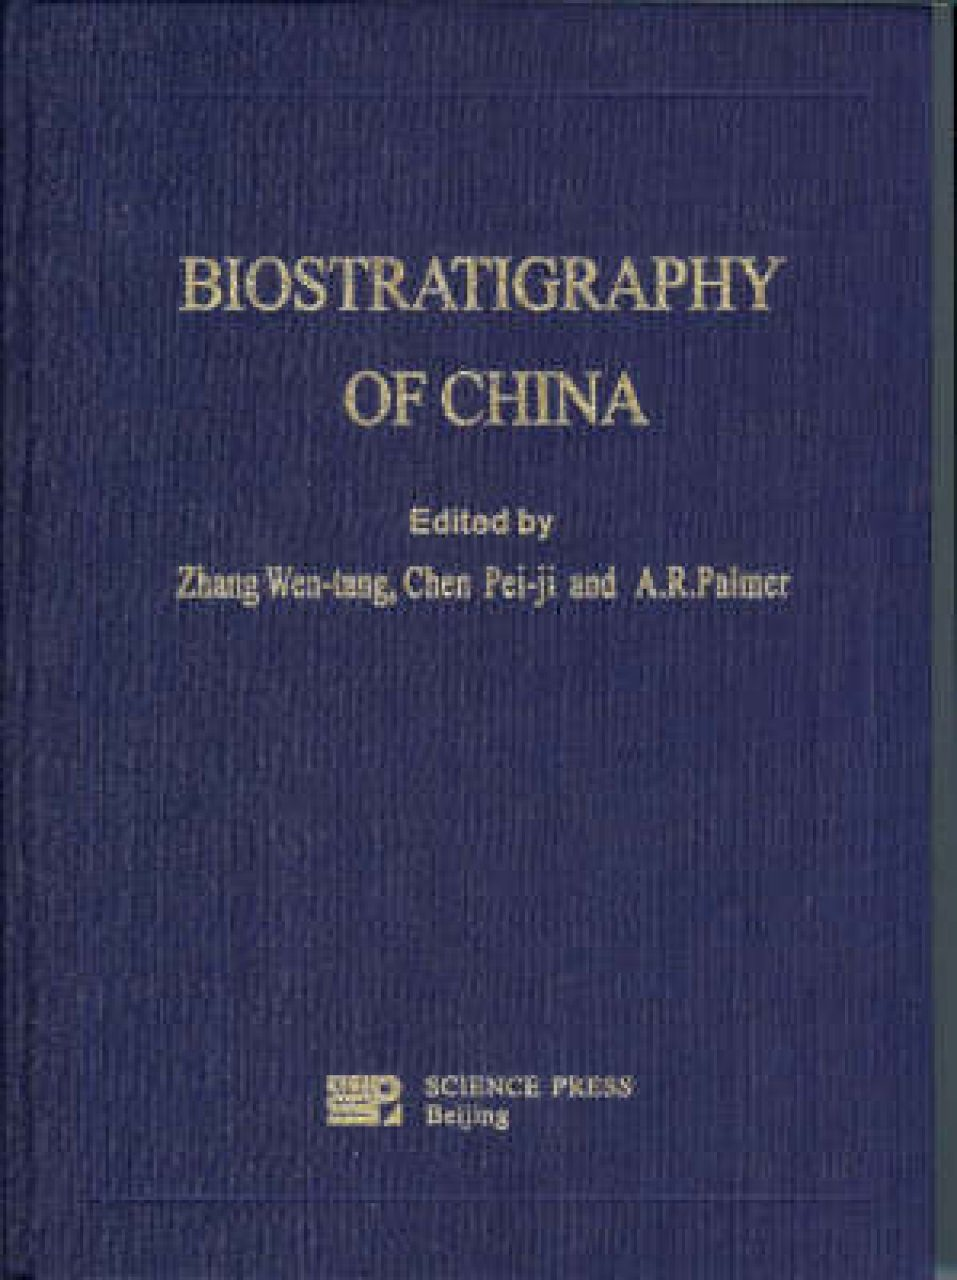 Biostratigraphy of China